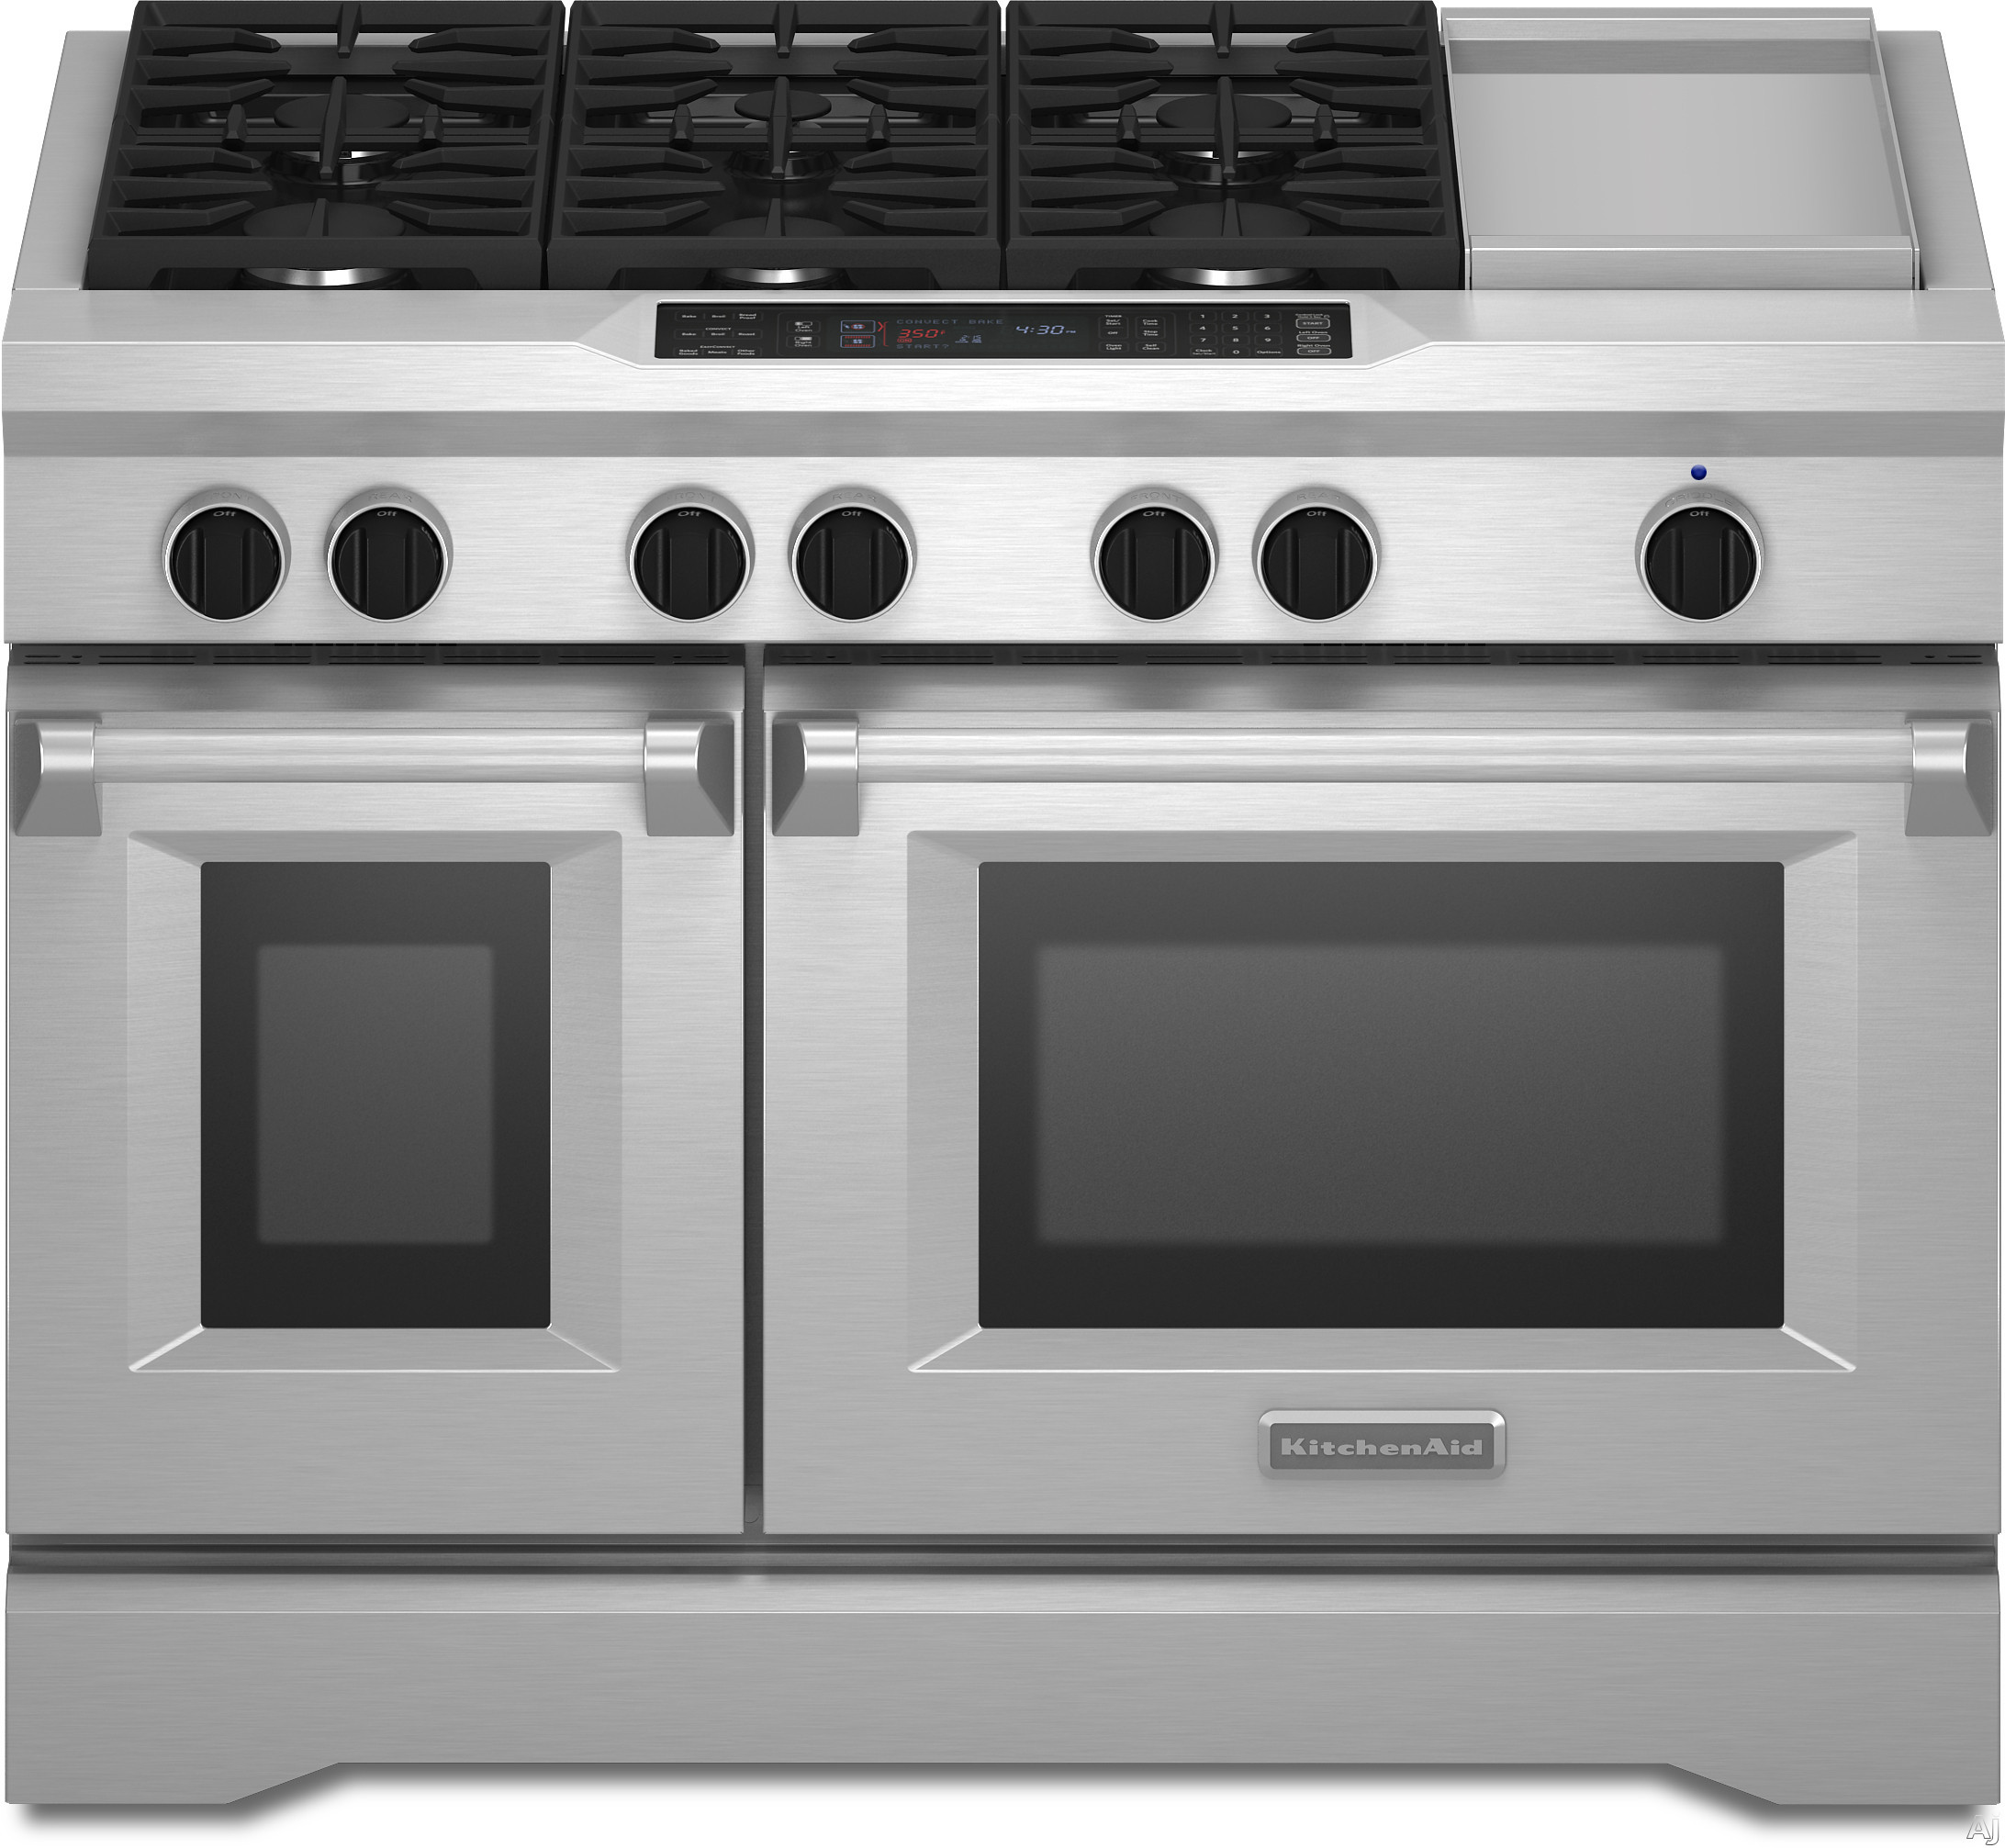 "KitchenAid KDRS483VSS 48"" Commercial-Style Dual Fuel Range with 6.3 cu. ft. Total Capacity Self-Clean Ovens, True Convection Bake, Two 20K BTU Dual-Flame Burners, Glass Touch Controls and Star-K Certified: Stainless Steel"